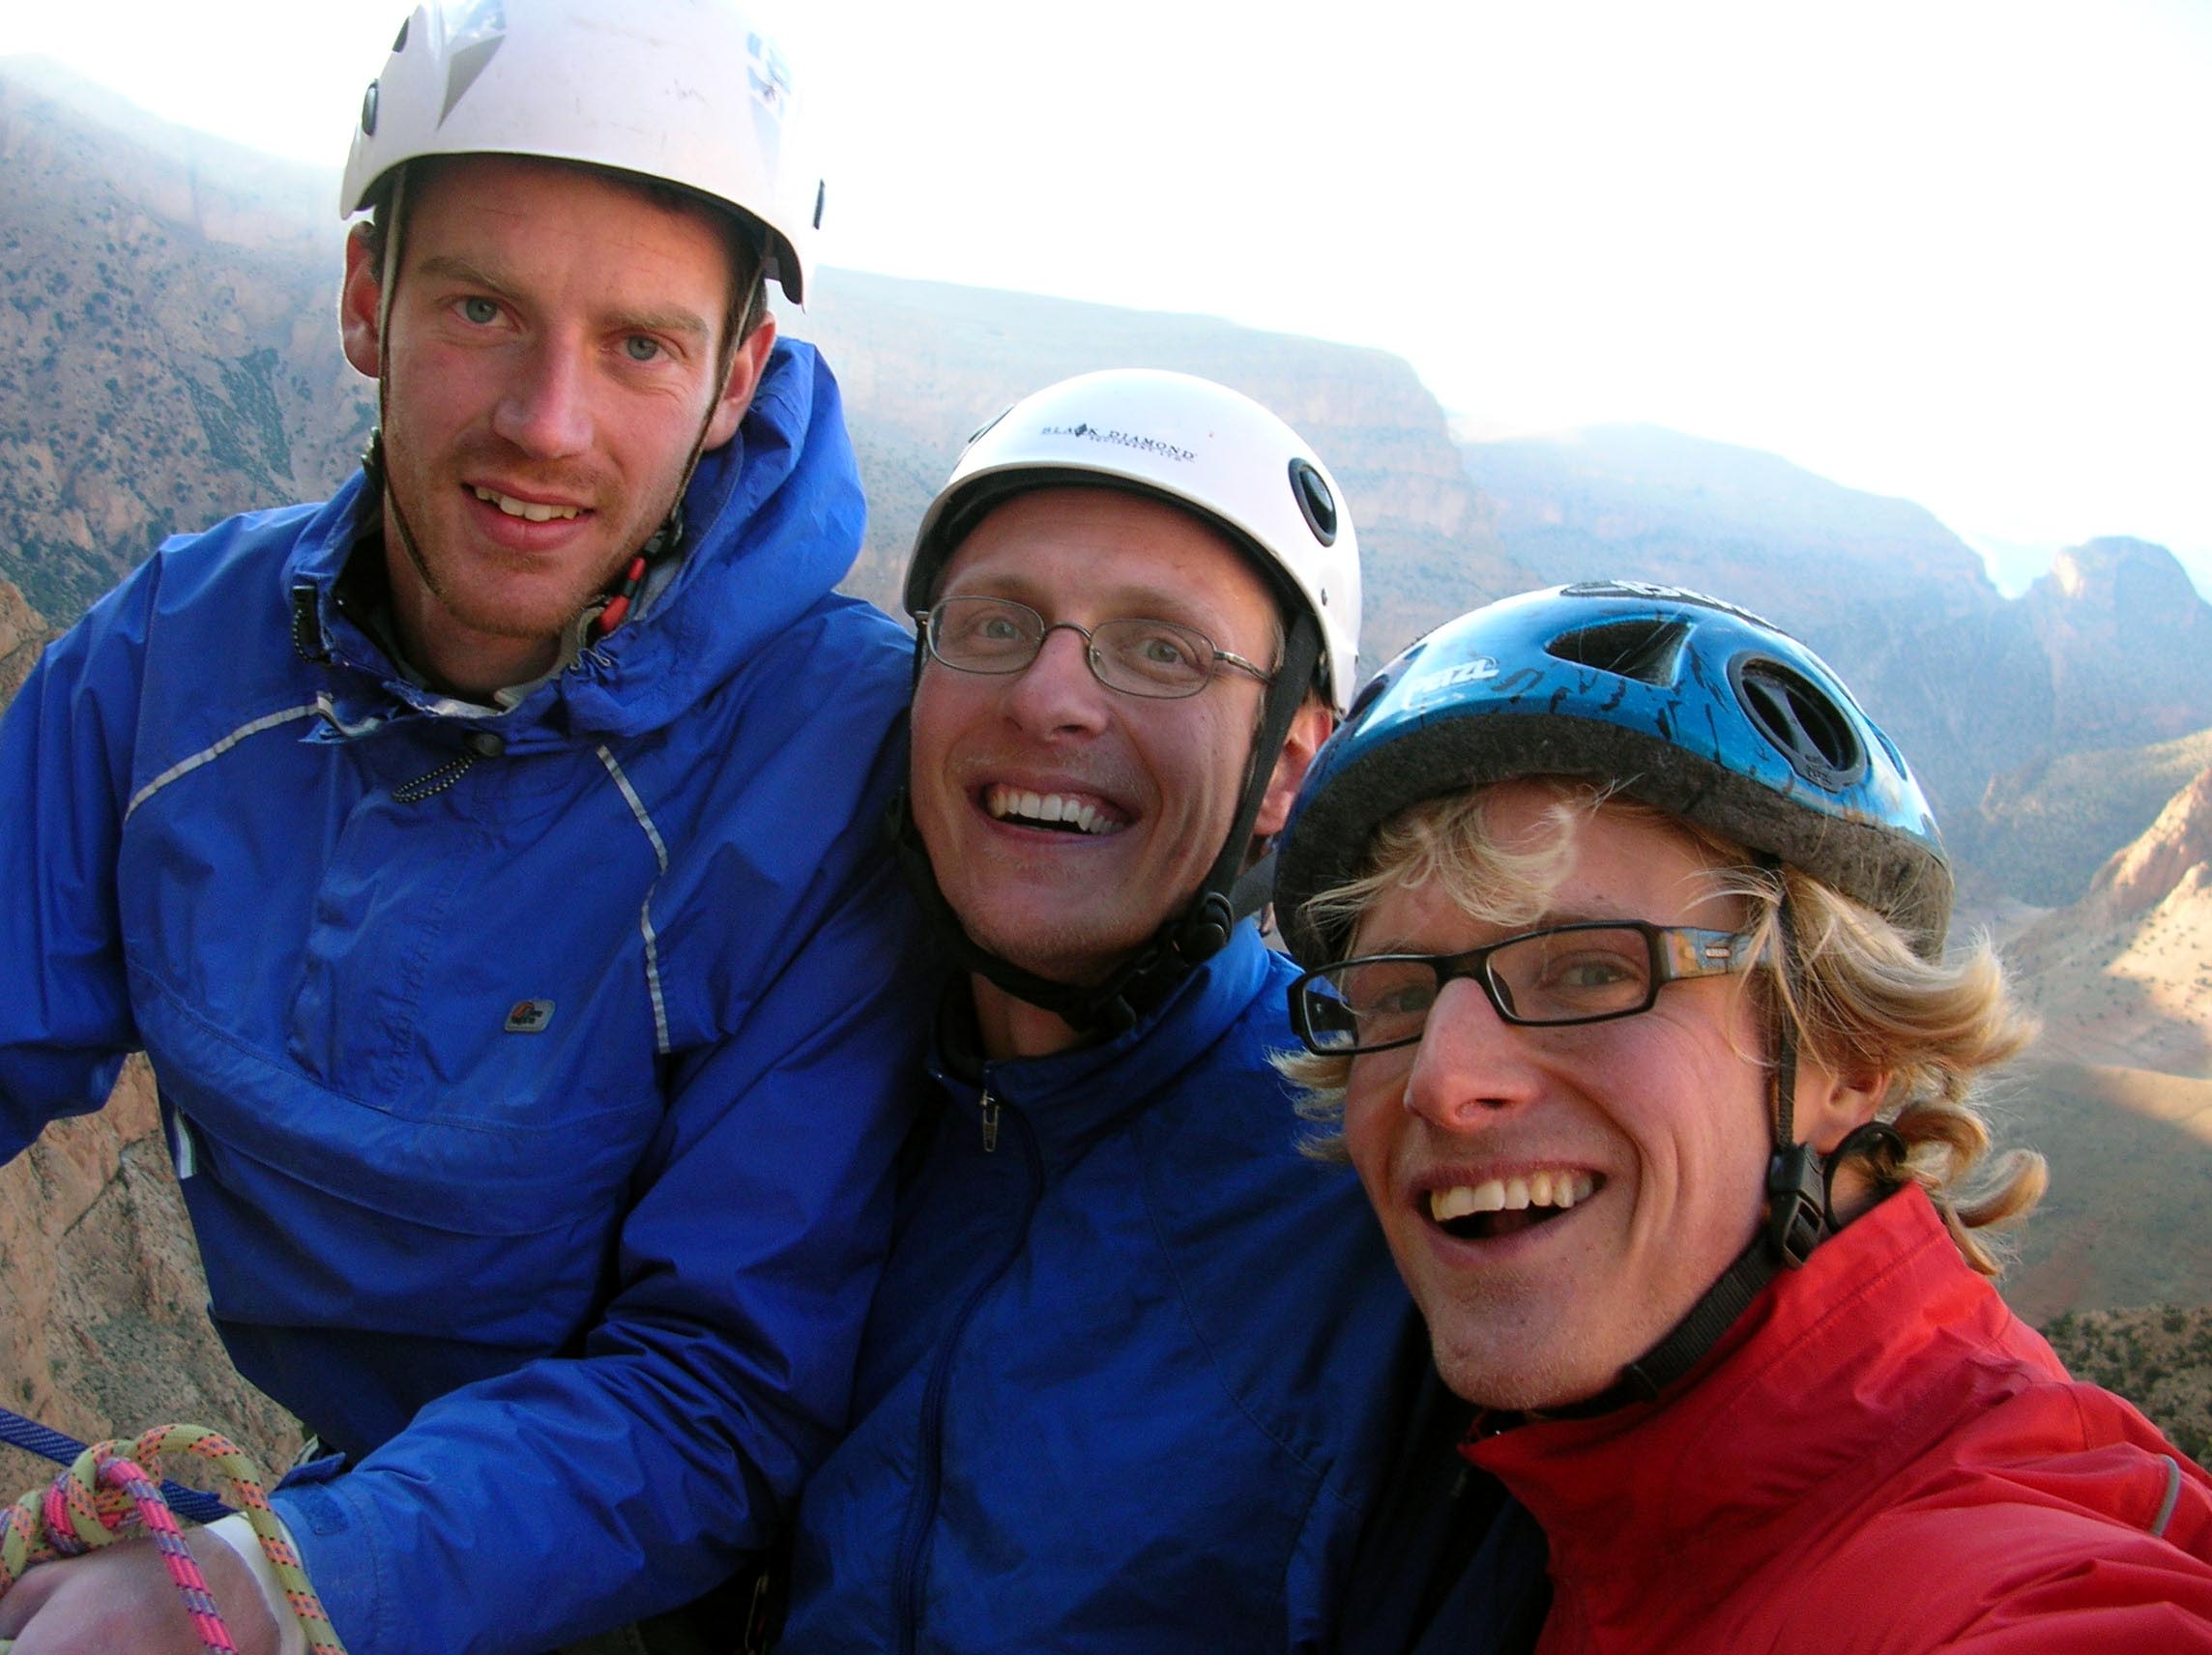 Myself, Juha Saatsi and Dave Pickford in Taghia, Morocco. This was a fantastic big wall sport climbing trip. The thing about these big wall 'sport routes' is that they are often really hard and a bit scary. I have certainly had to push myself much harder on this type of climbing than on some classic alpine north face routes such as the Eiger.